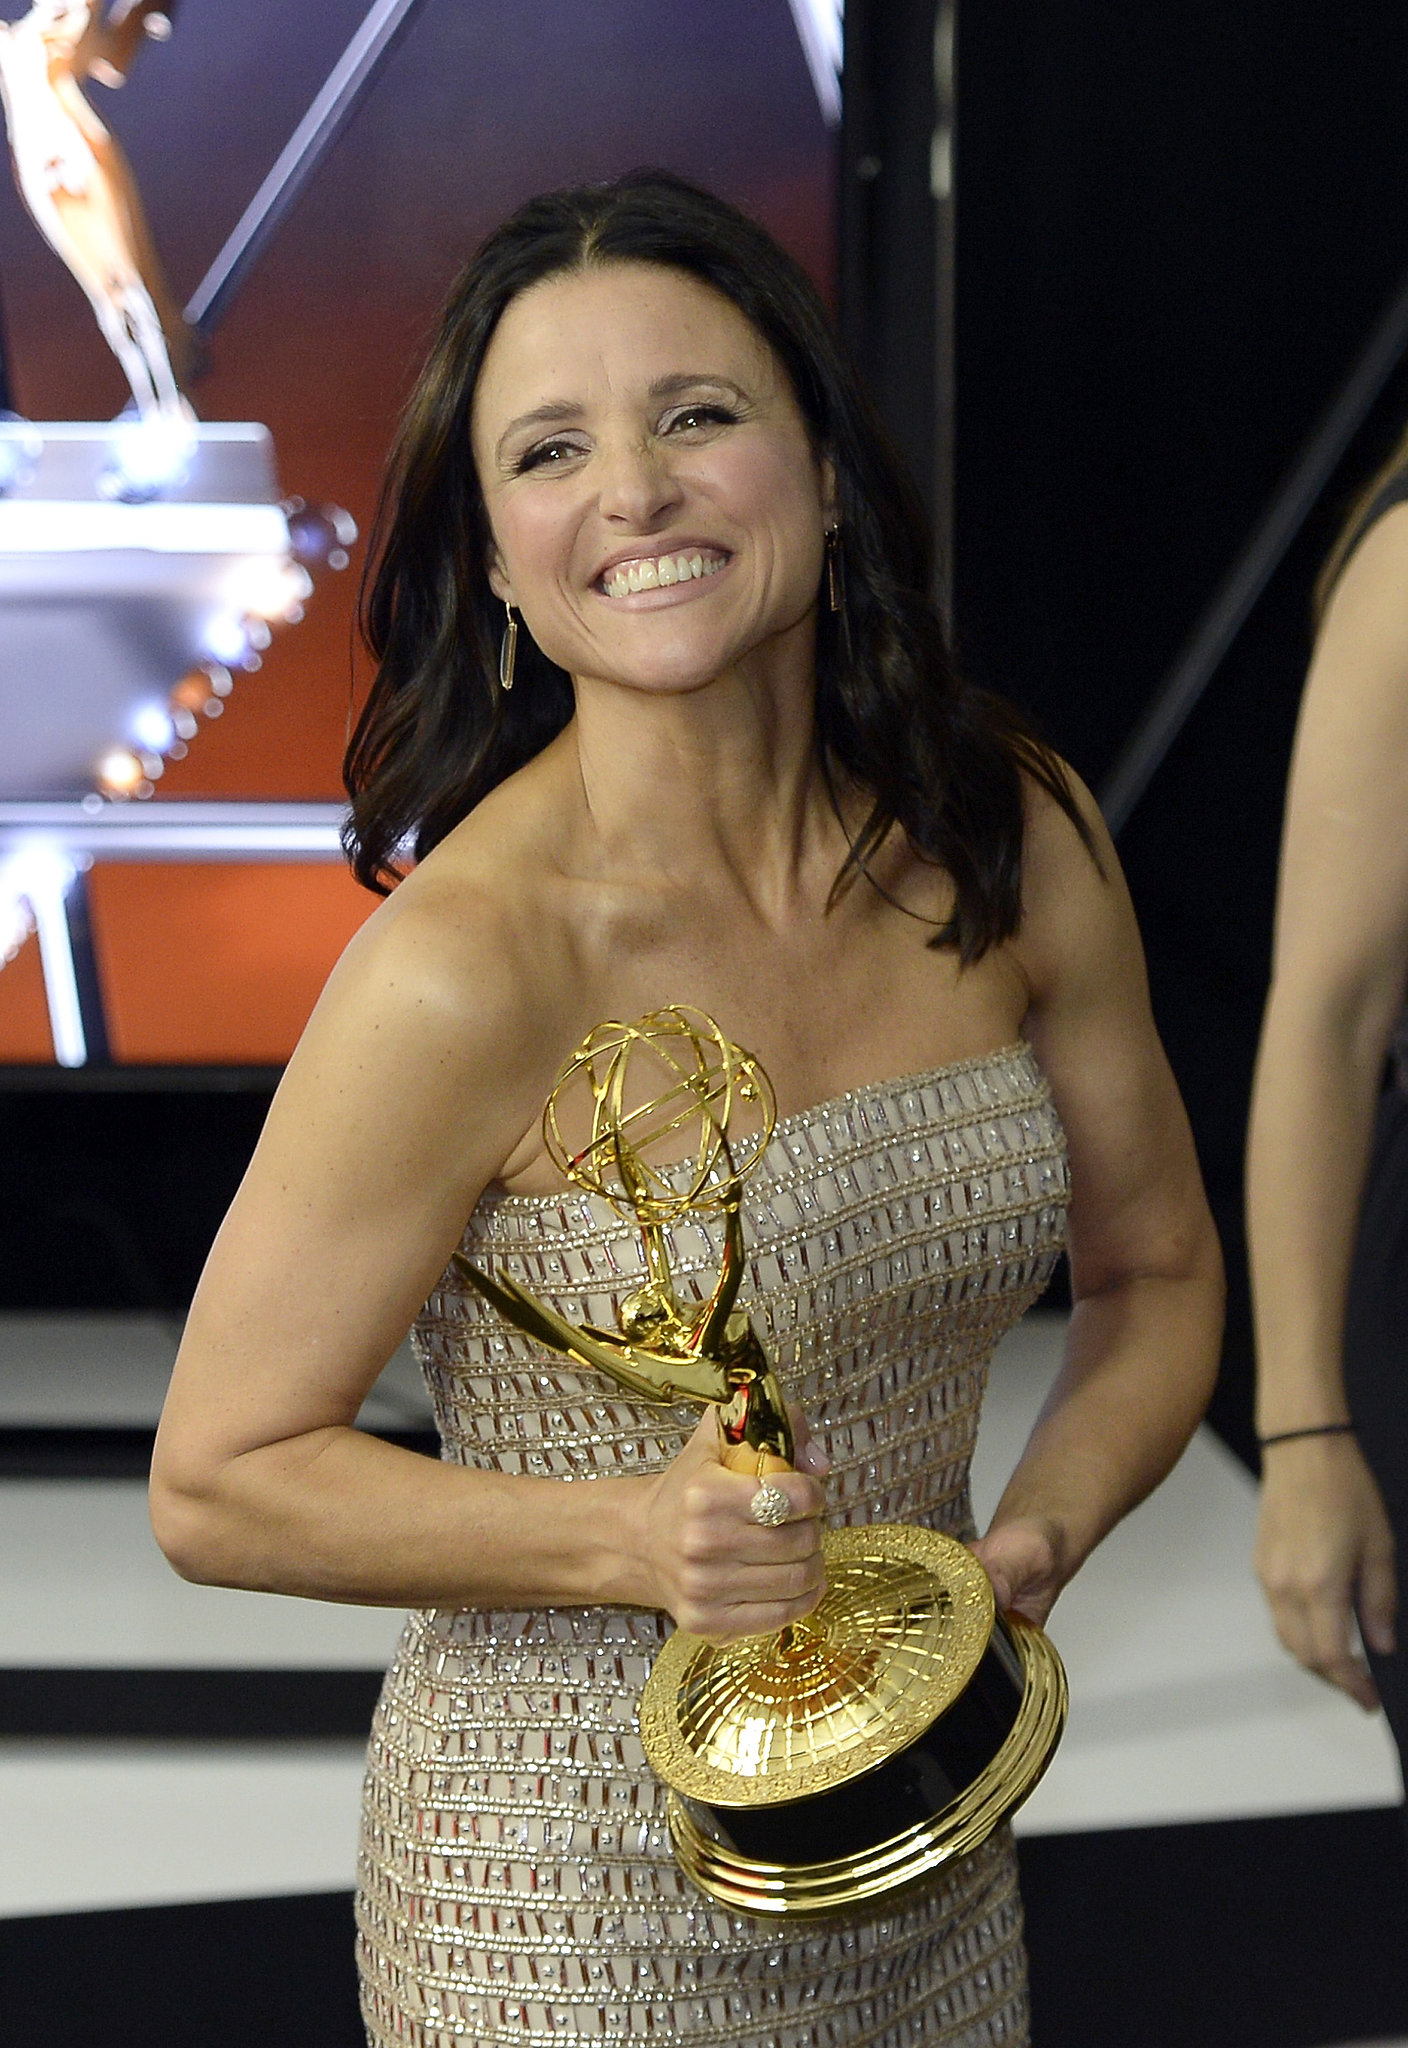 Julia Louis-Dreyfus gave a big grin after winning the award for best